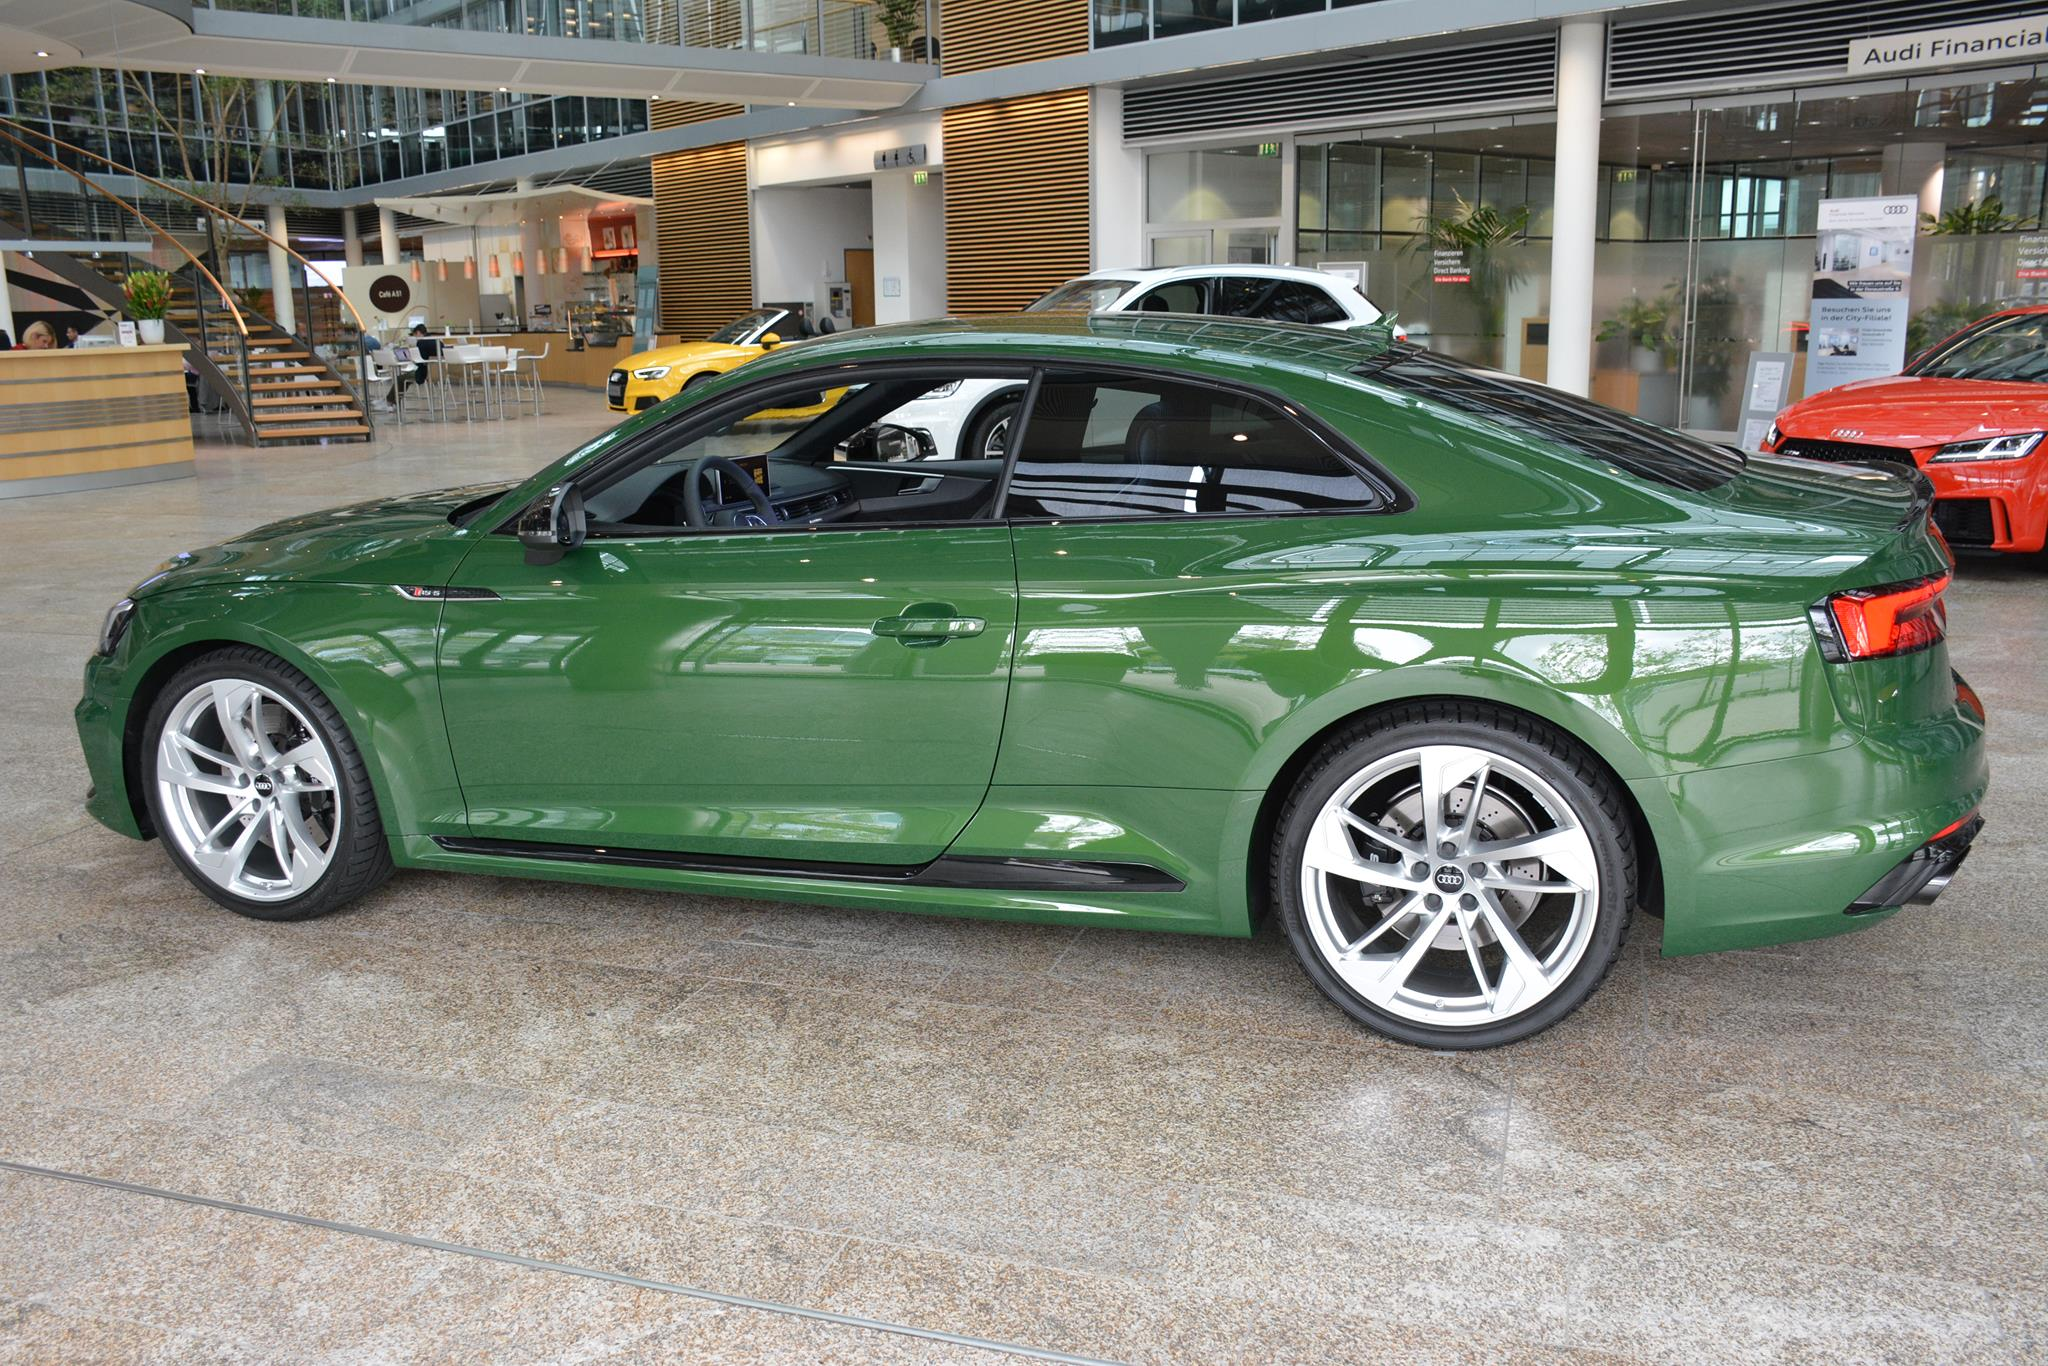 2018 audi rs5 coupe in sonoma green spotted at audi forum ingolstadt autoevolution. Black Bedroom Furniture Sets. Home Design Ideas